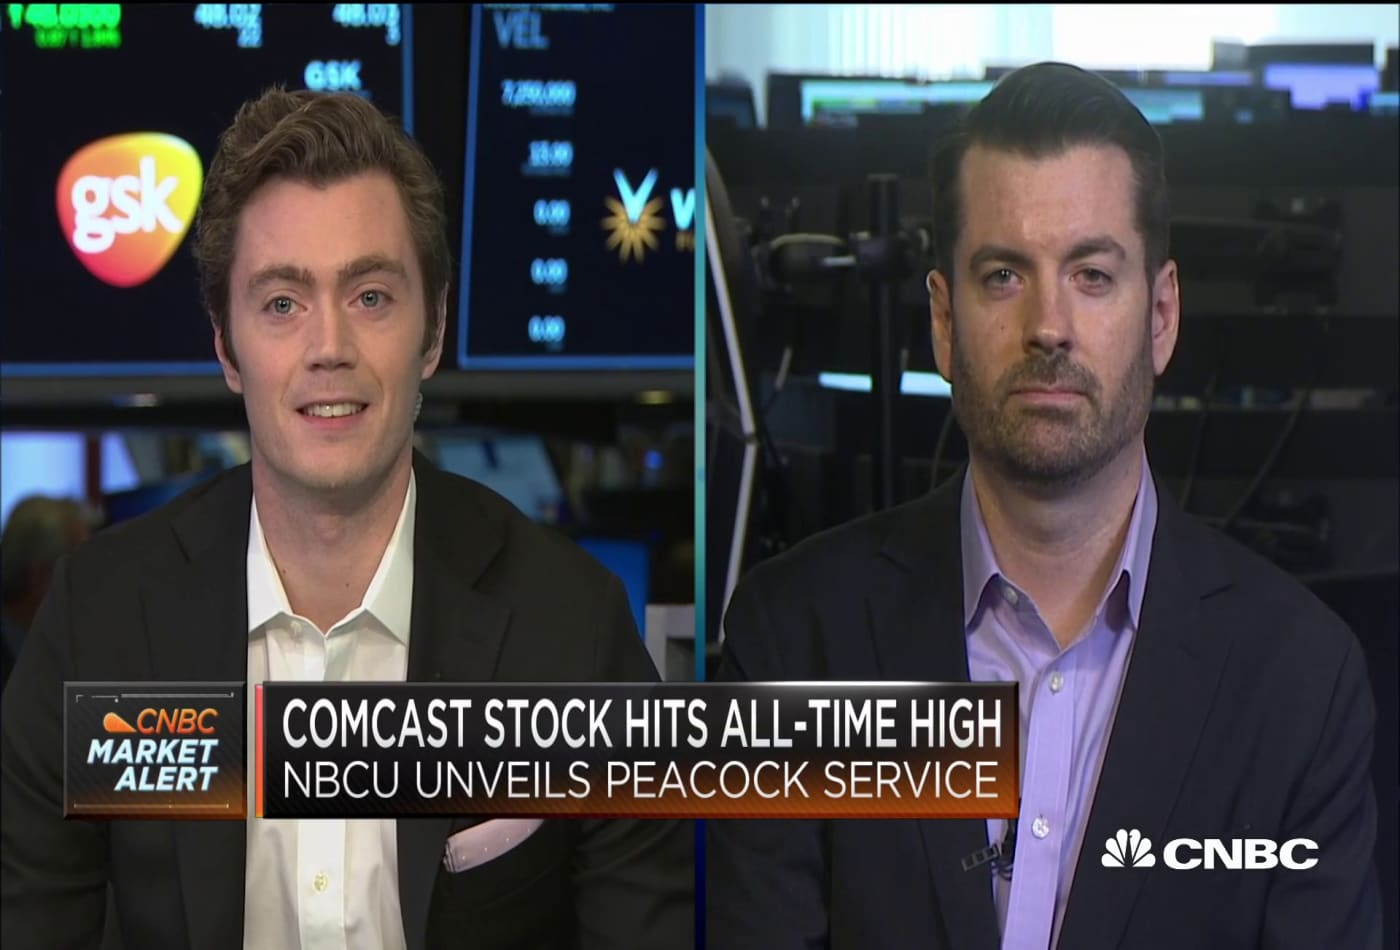 Comcast stock hits all-time high after streaming service details revealed